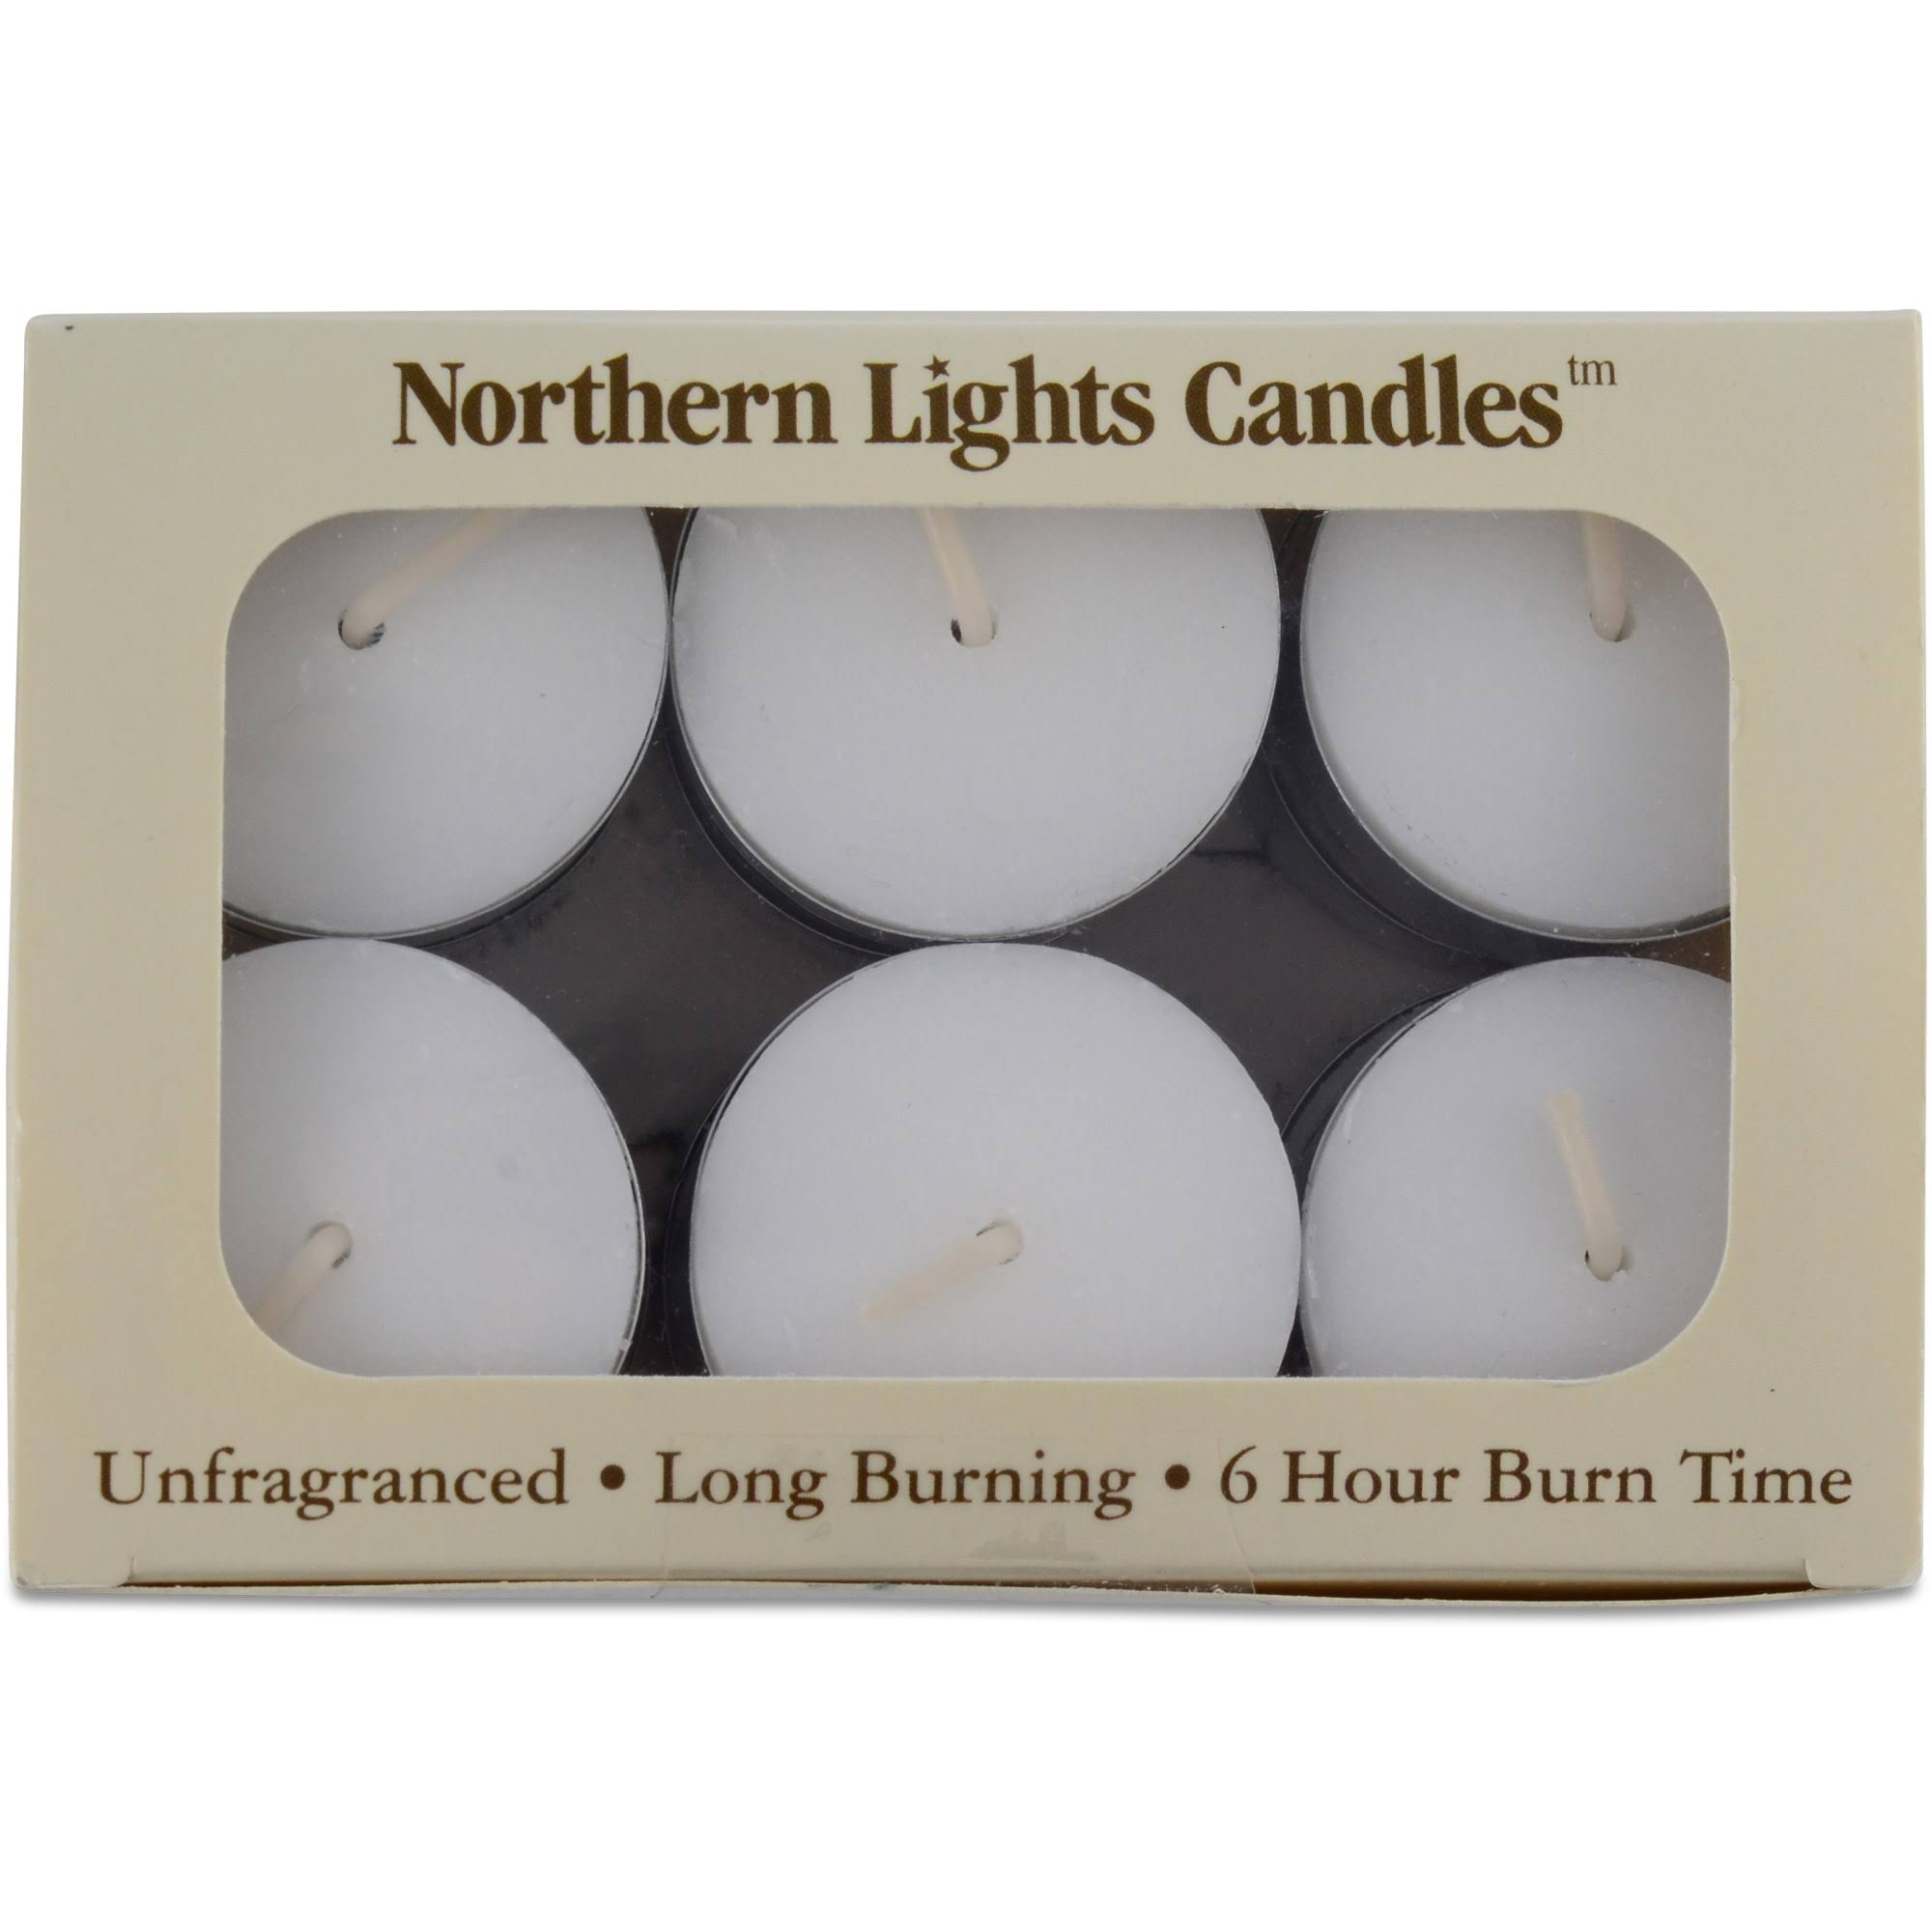 Northern Lights Candles 12-pc. 6 Hour Long-Burning Tealights